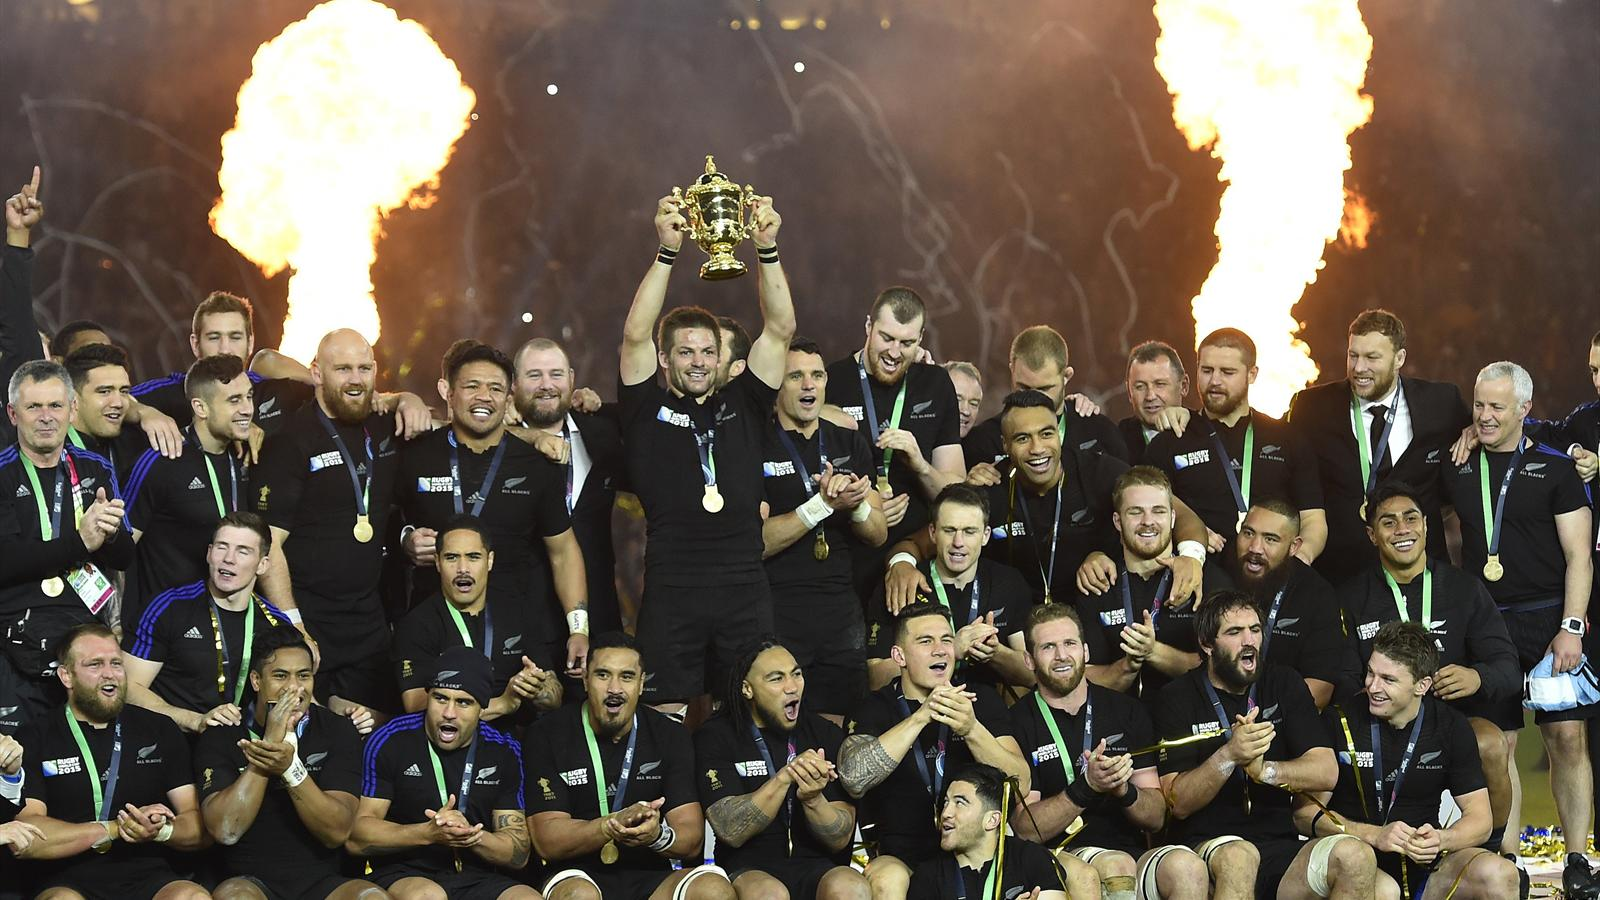 Captain Richie McCaw of New Zealand holds up the Webb Ellis Cup after winning the Rugby World Cup Final against Australia at Twickenham